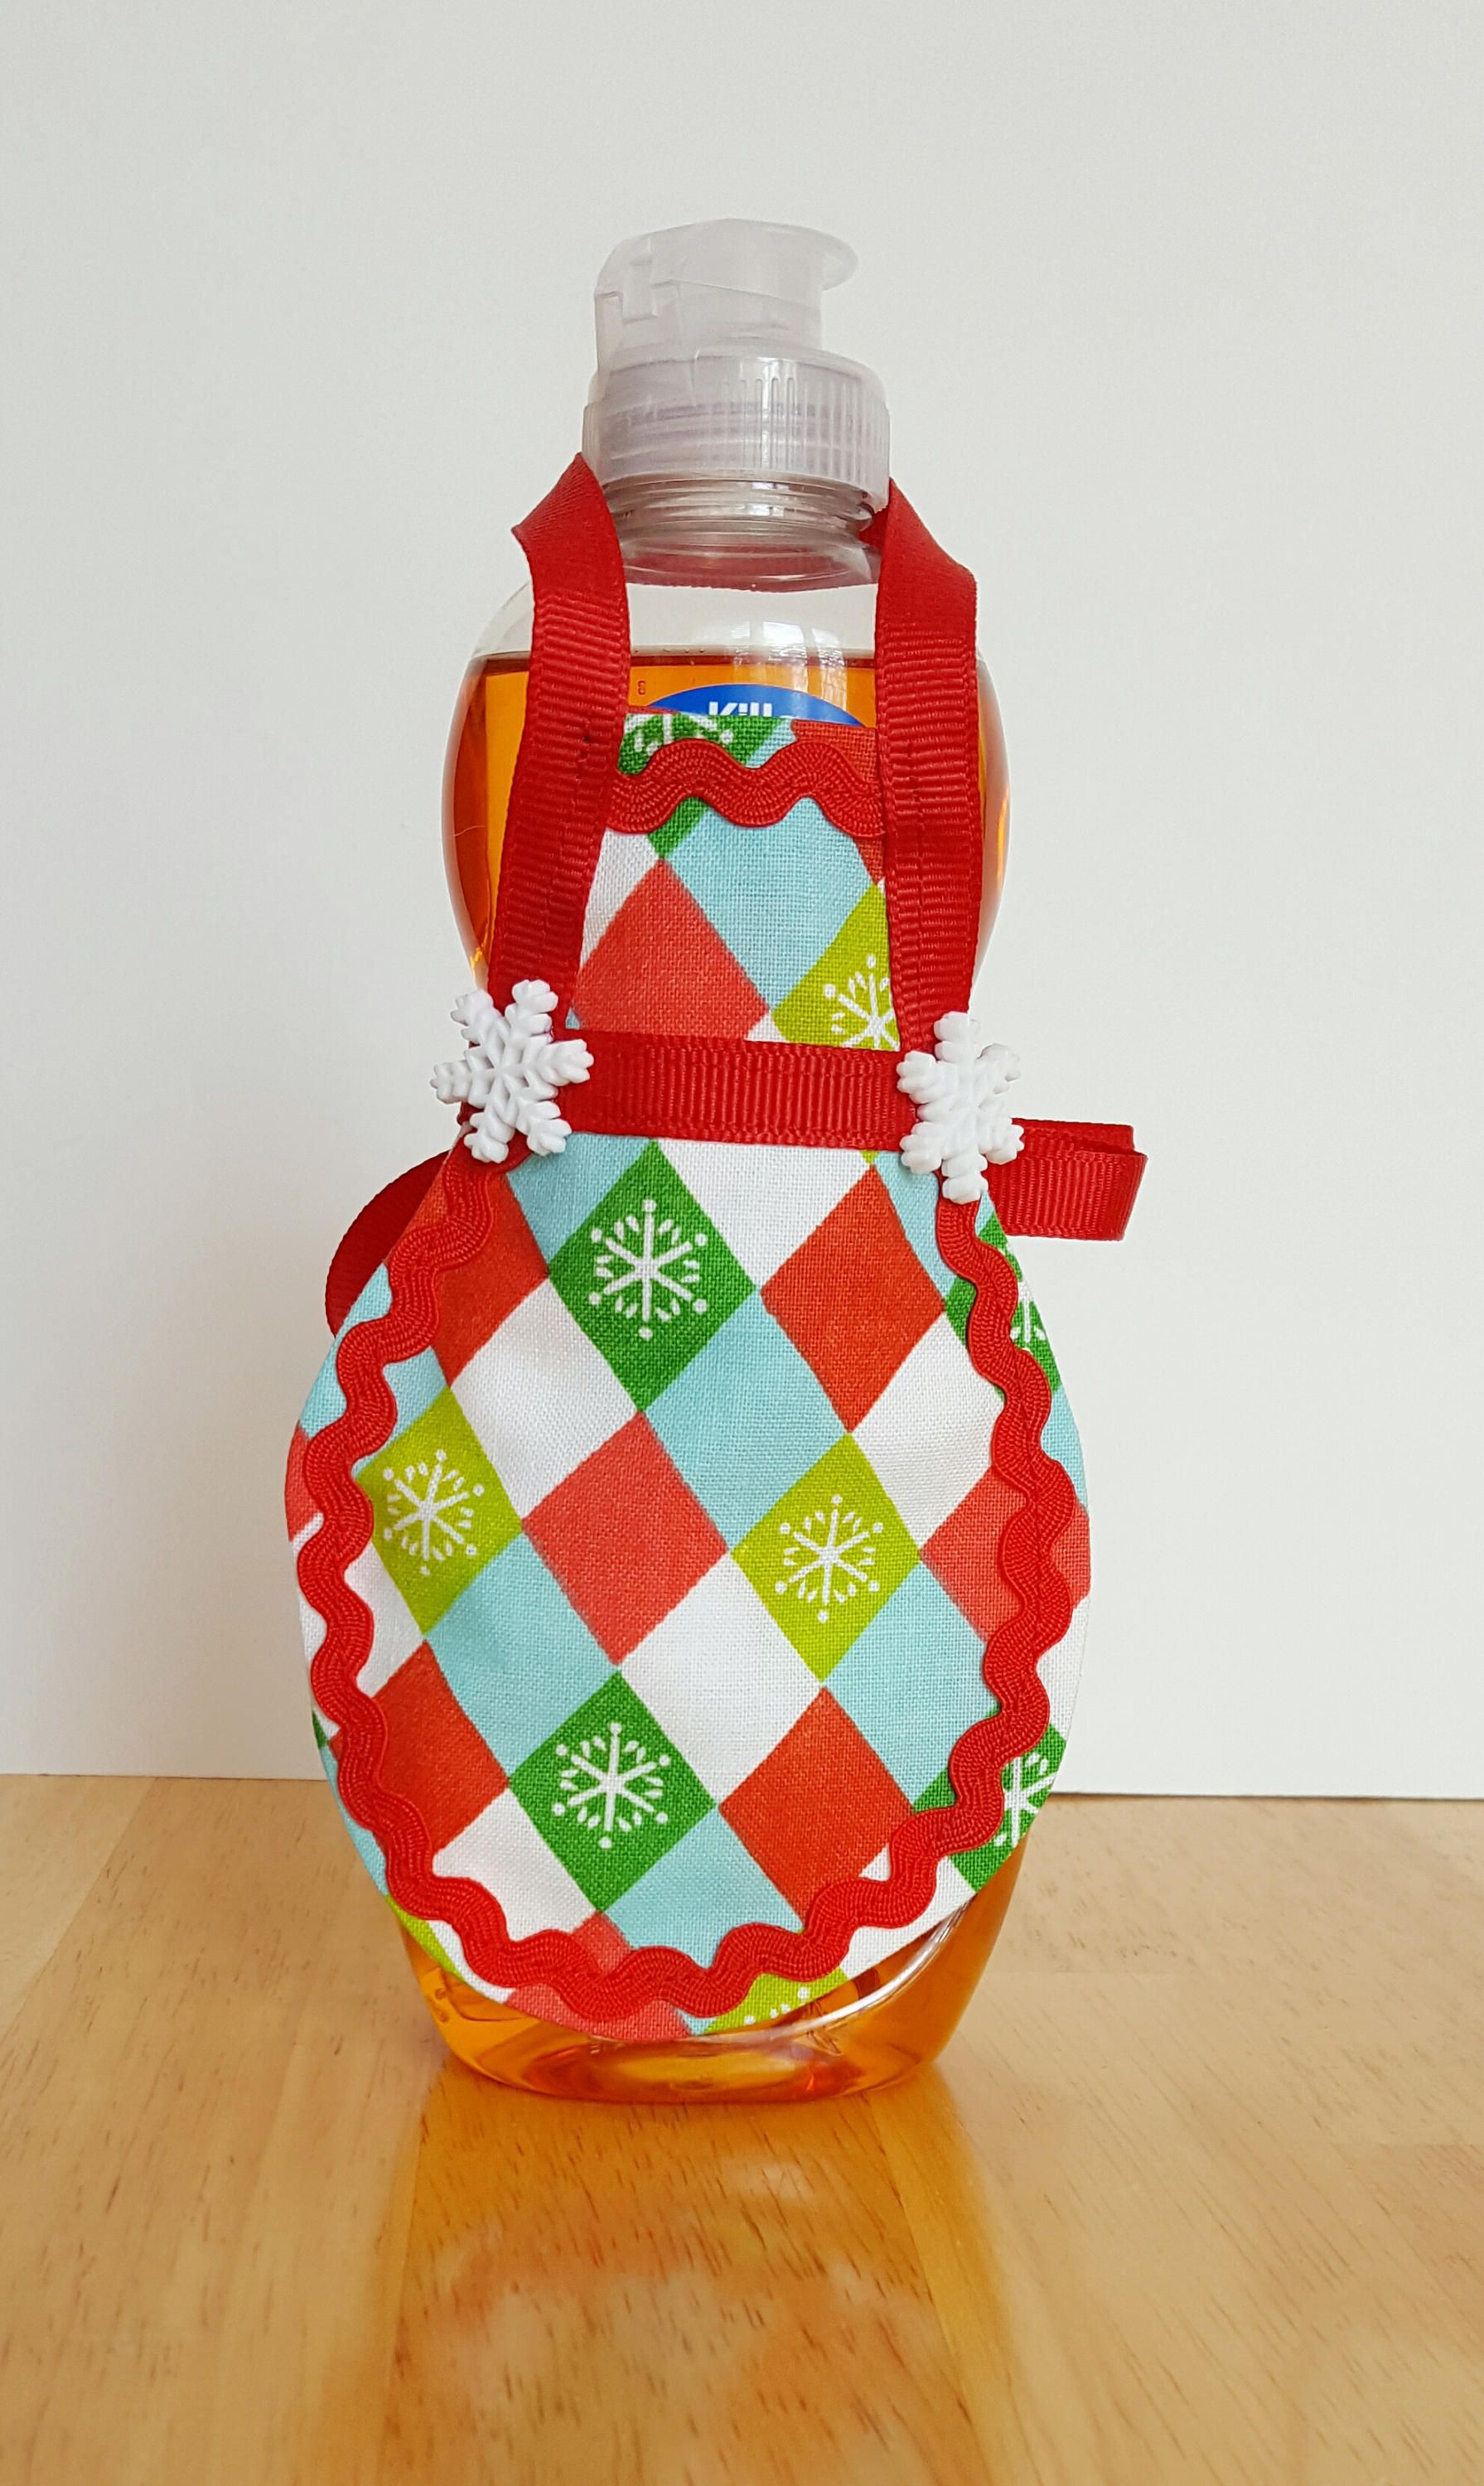 Christmas Soap Apron Holiday Kitchen Soap Bottle Apron Dish Etsy In 2020 Christmas Soap Handmade Etsy Gifts Holiday Kitchen